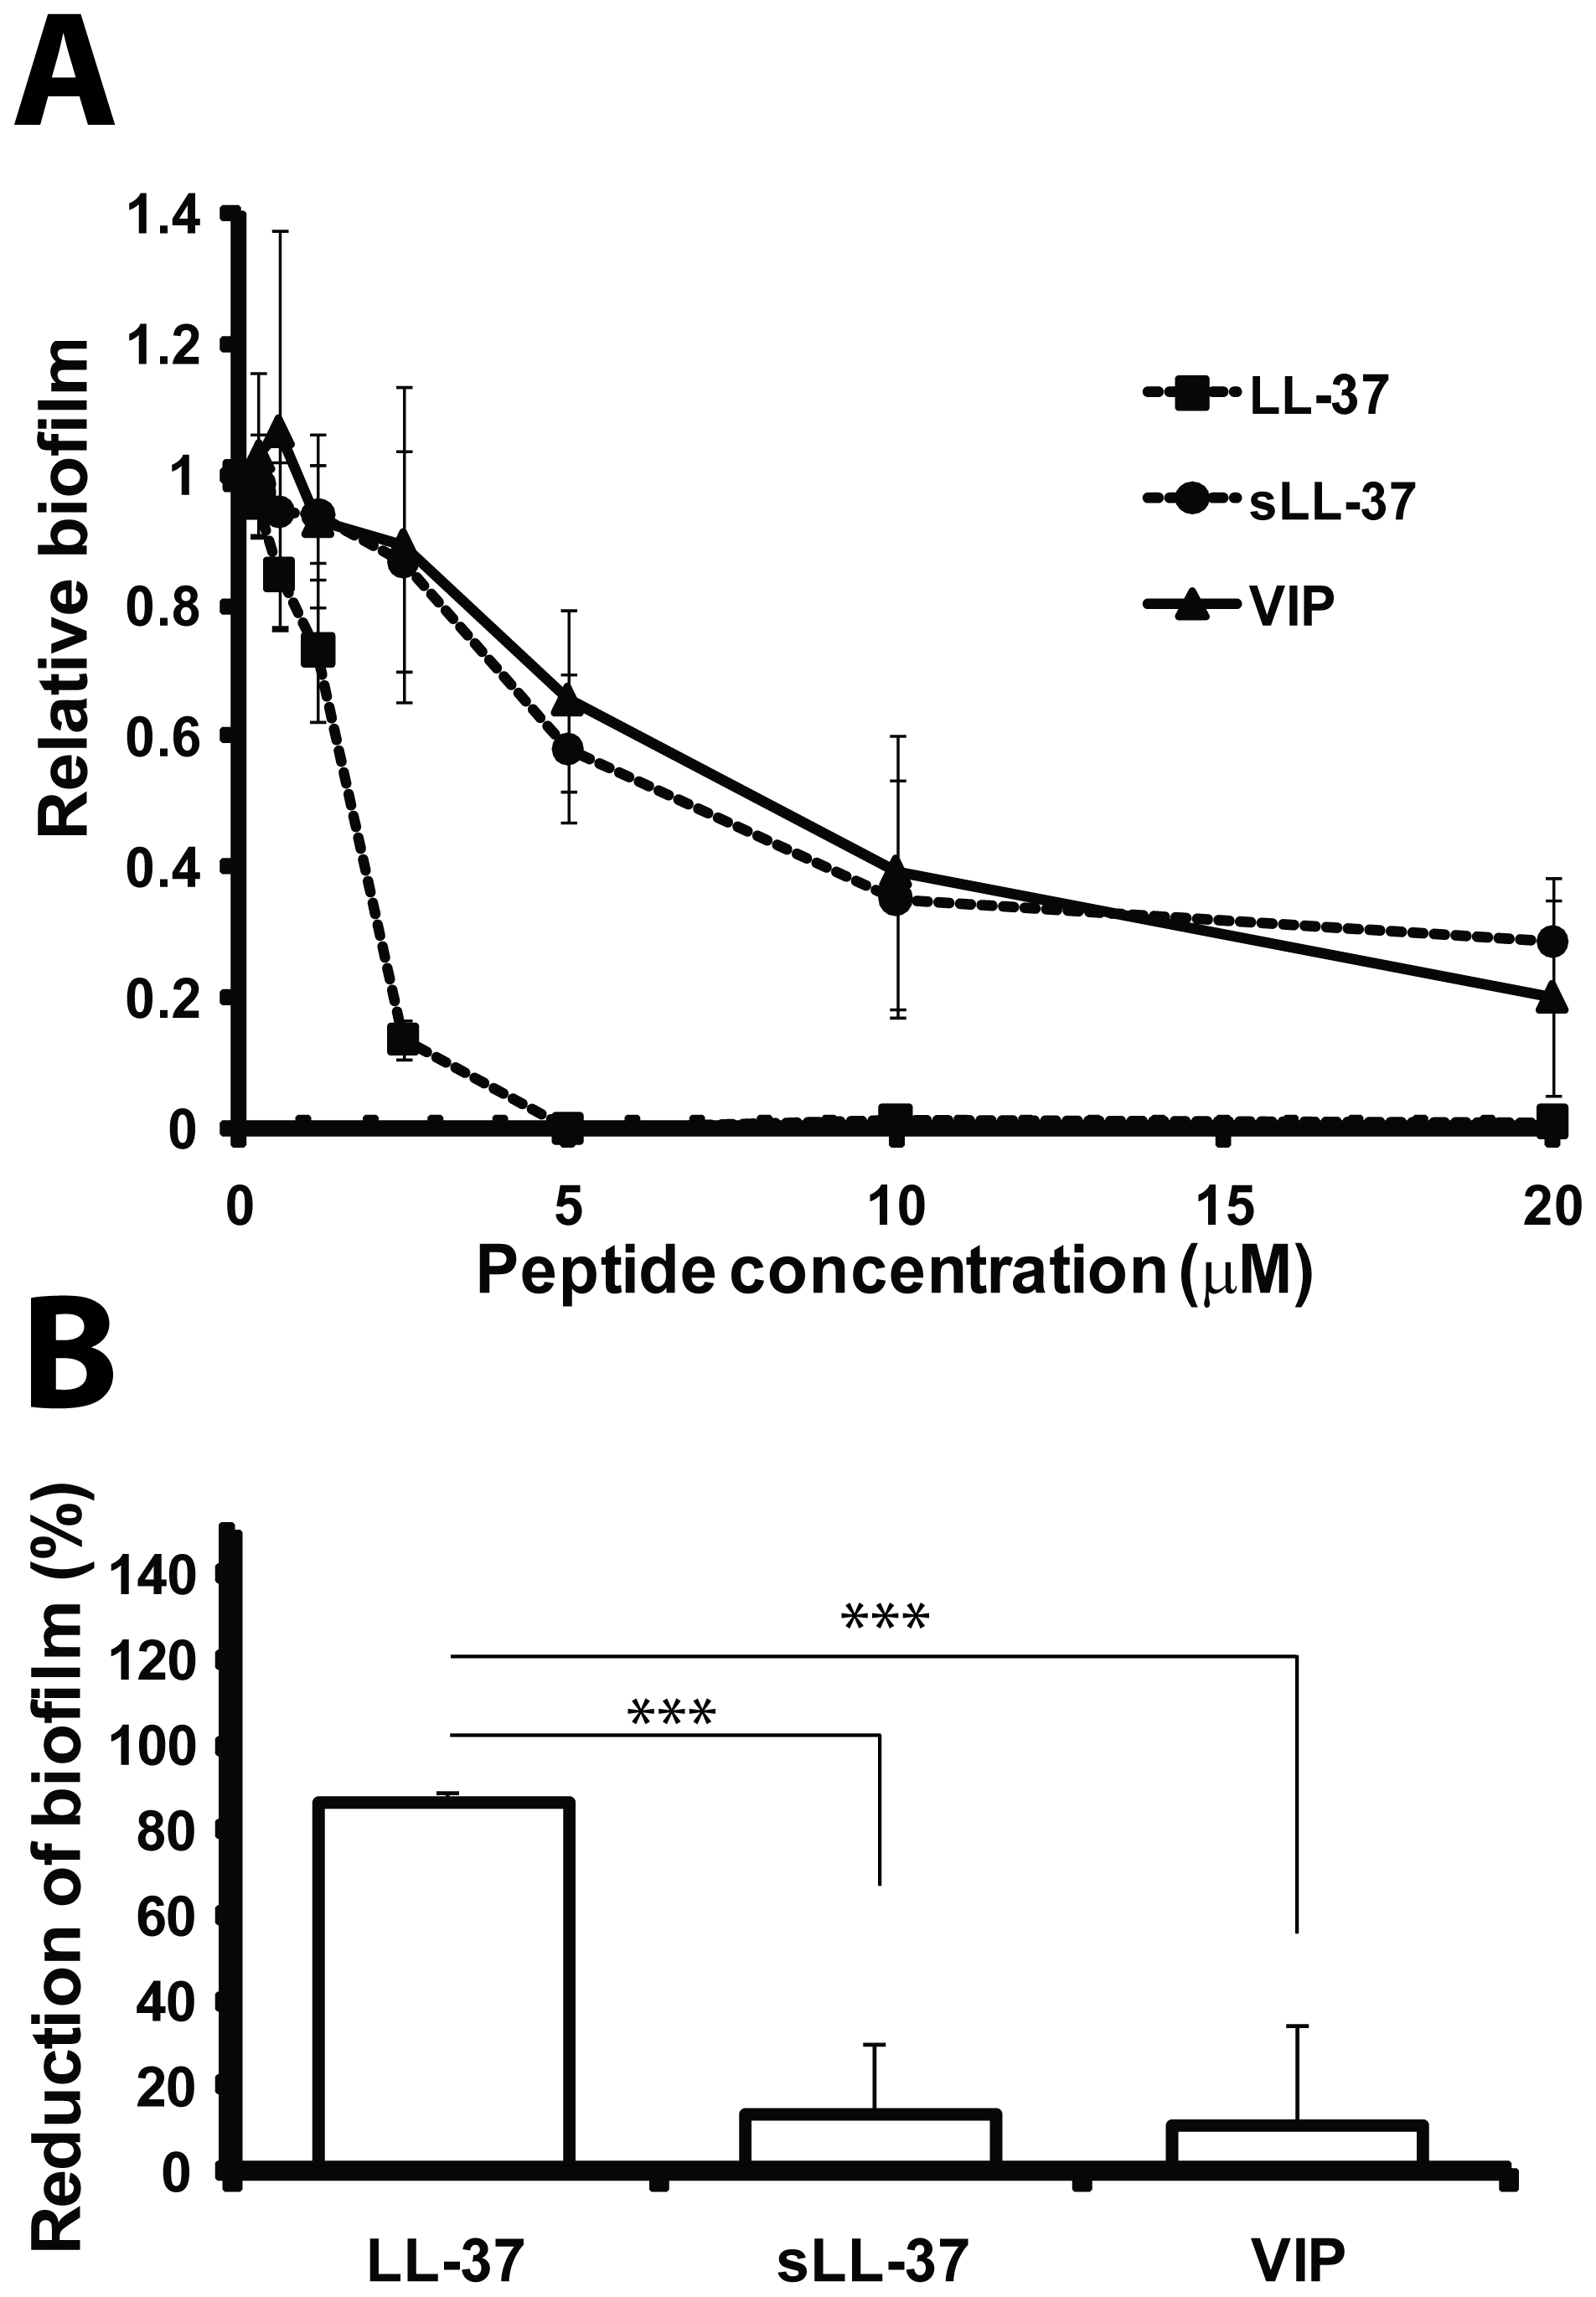 LL-37 prevents formation of biofilm by <i>E. coli</i> in vitro.